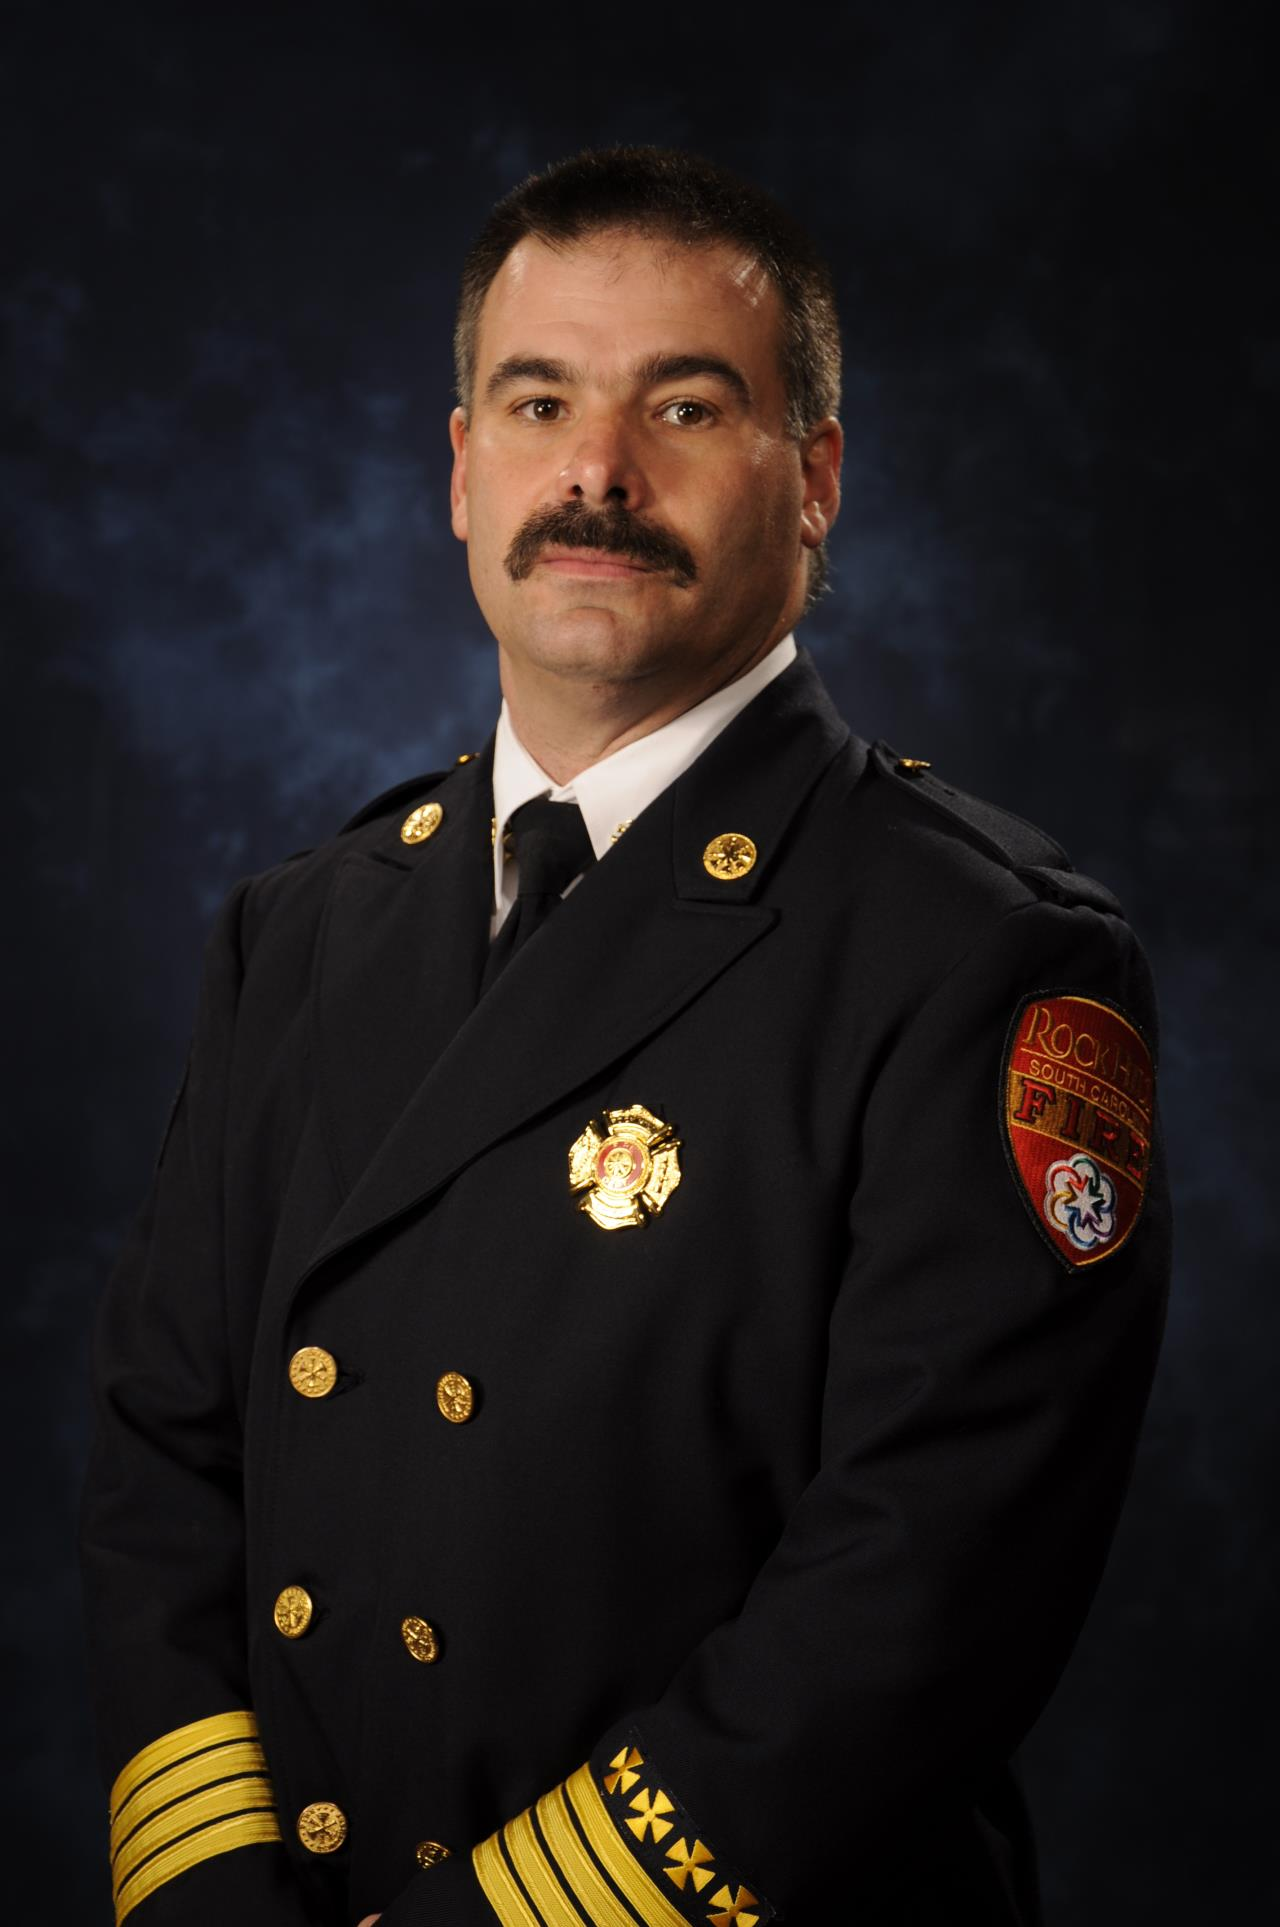 Deputy Chief Operations                  Mark Simmons